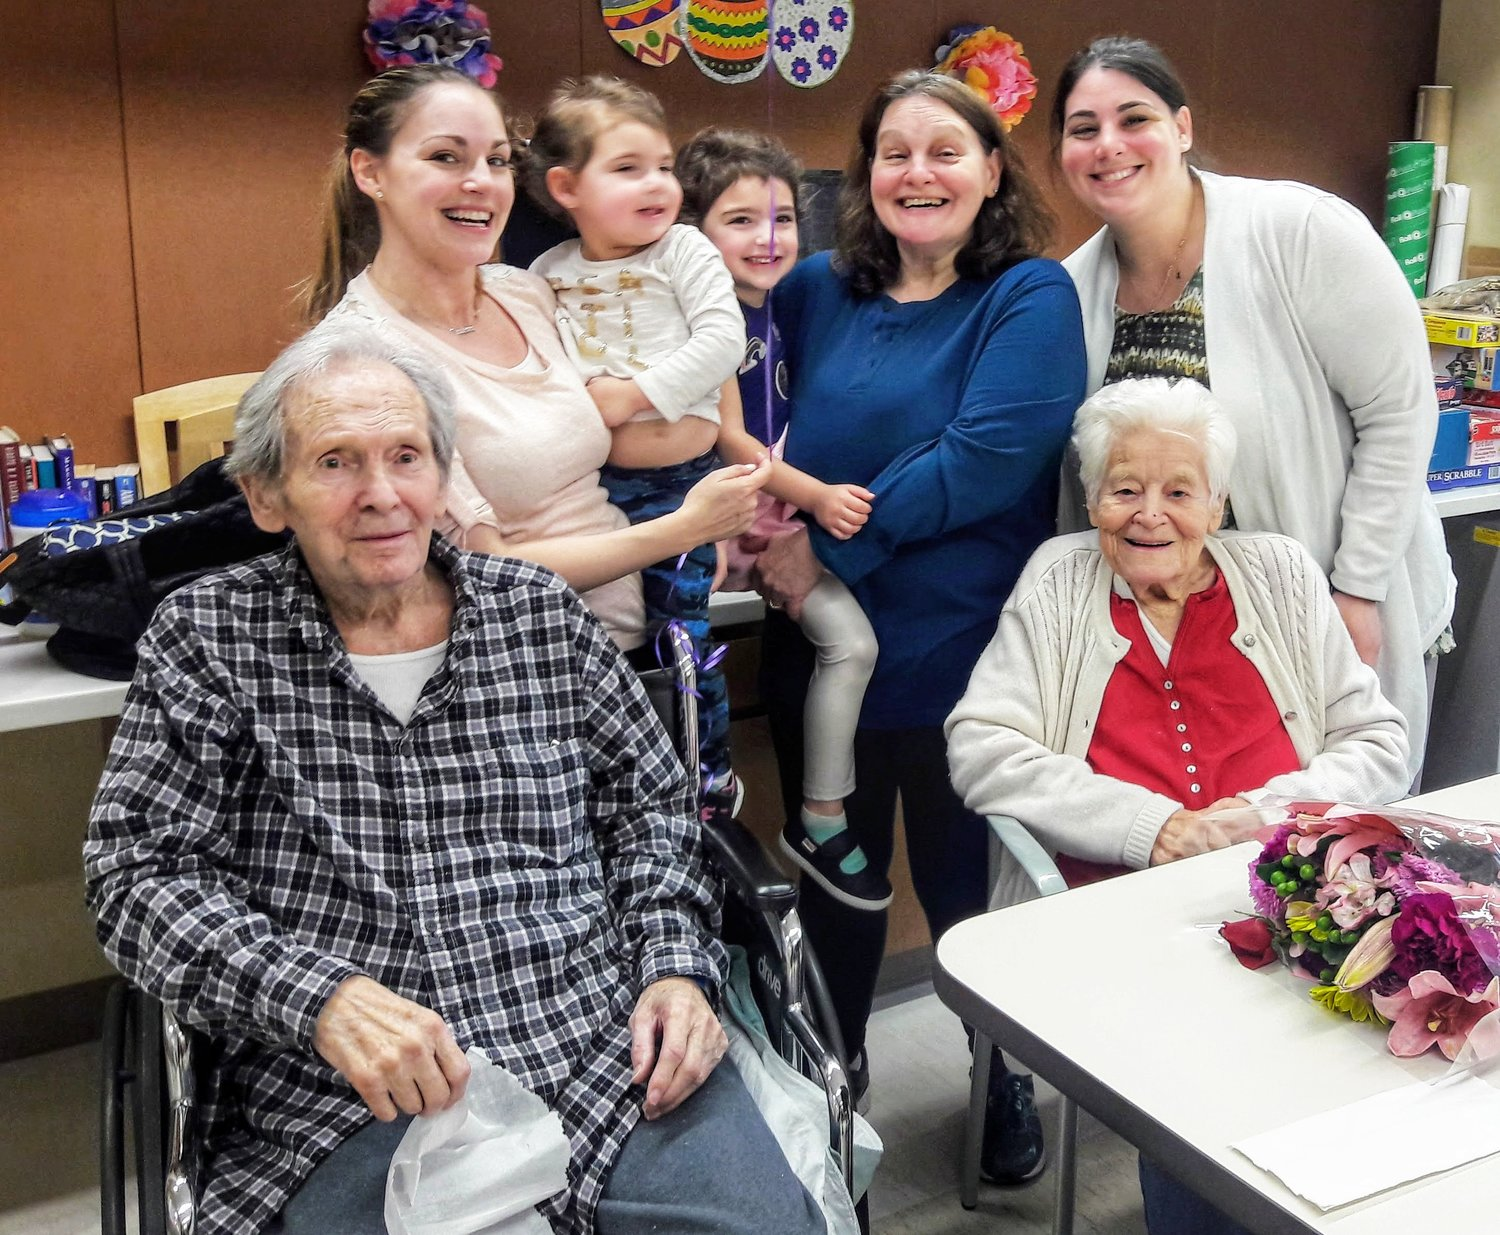 The Schacherls with their daughter Berta, in blue, and their granddaughters and great-granddaughters.